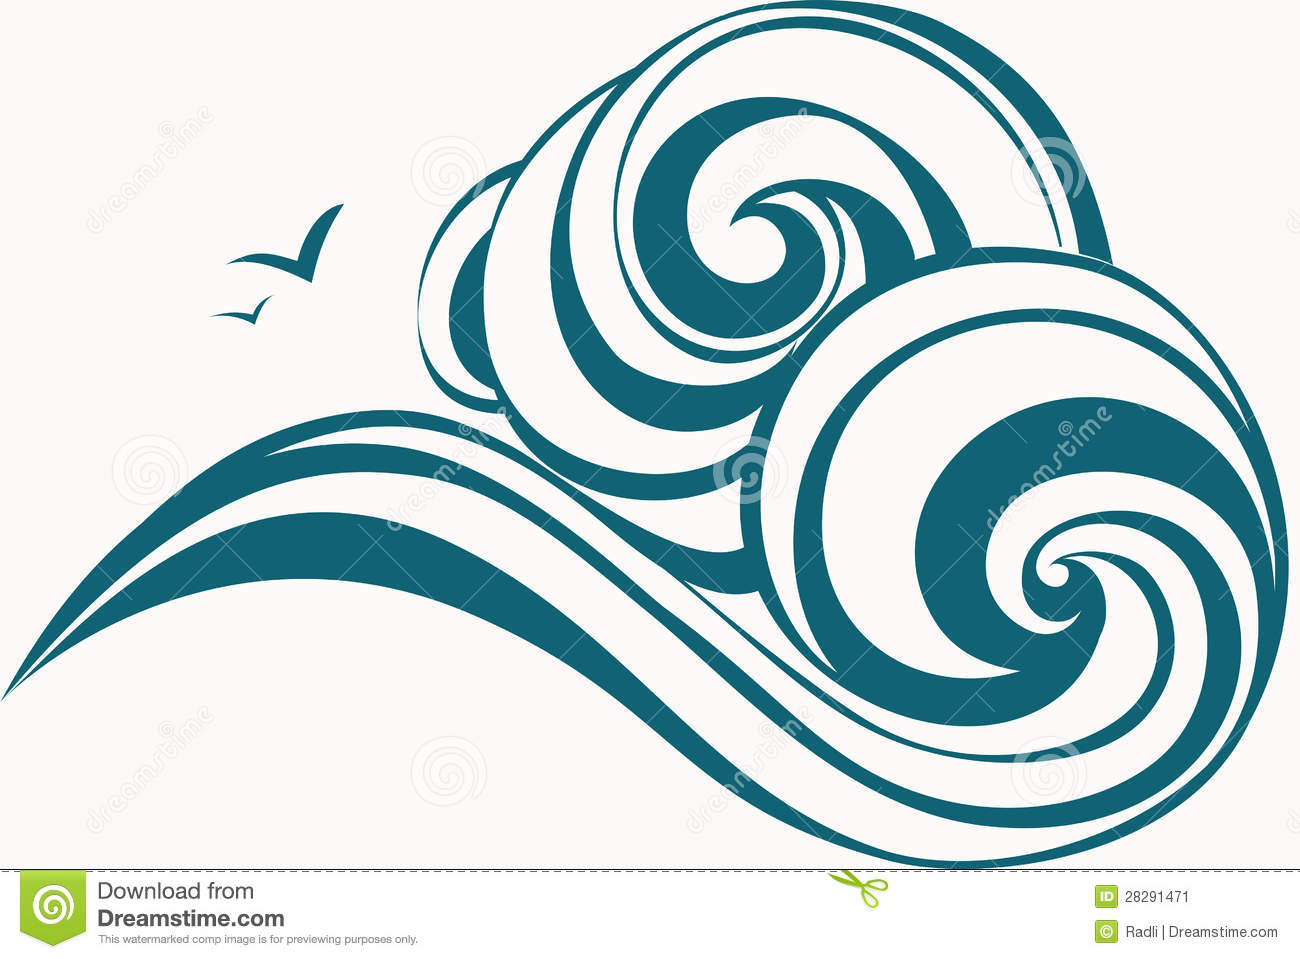 Drawn ocean simple Clipart Clipart Free Waves LAYOUT